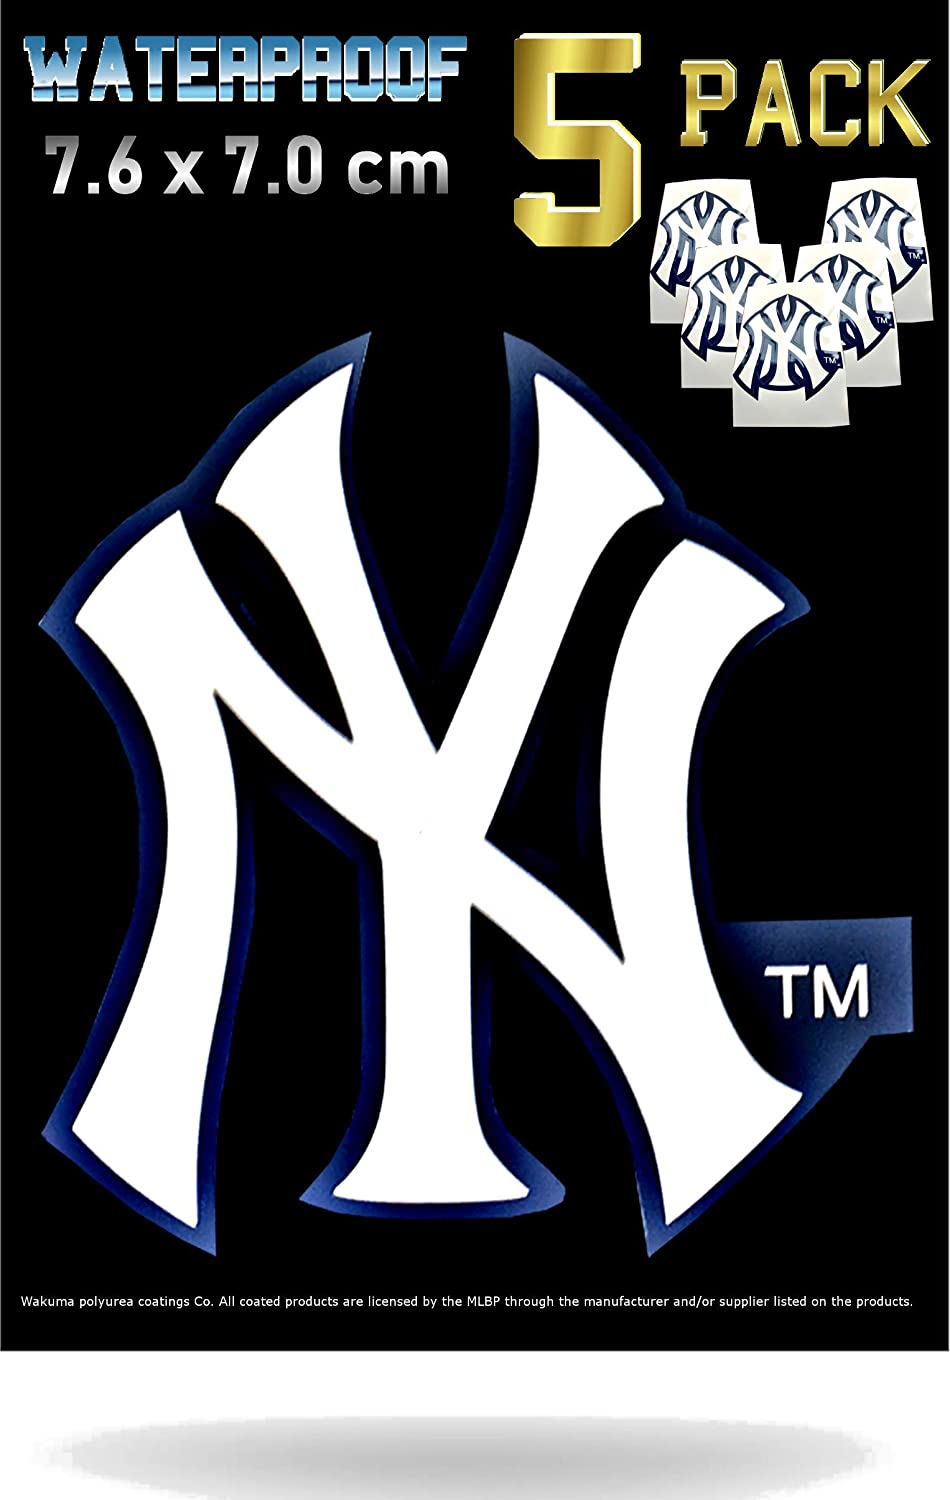 New York Yankees Car Decal Stickers Pack | Waterproof Glossy Finish |Thick  NY Emblem Logo Sticker|